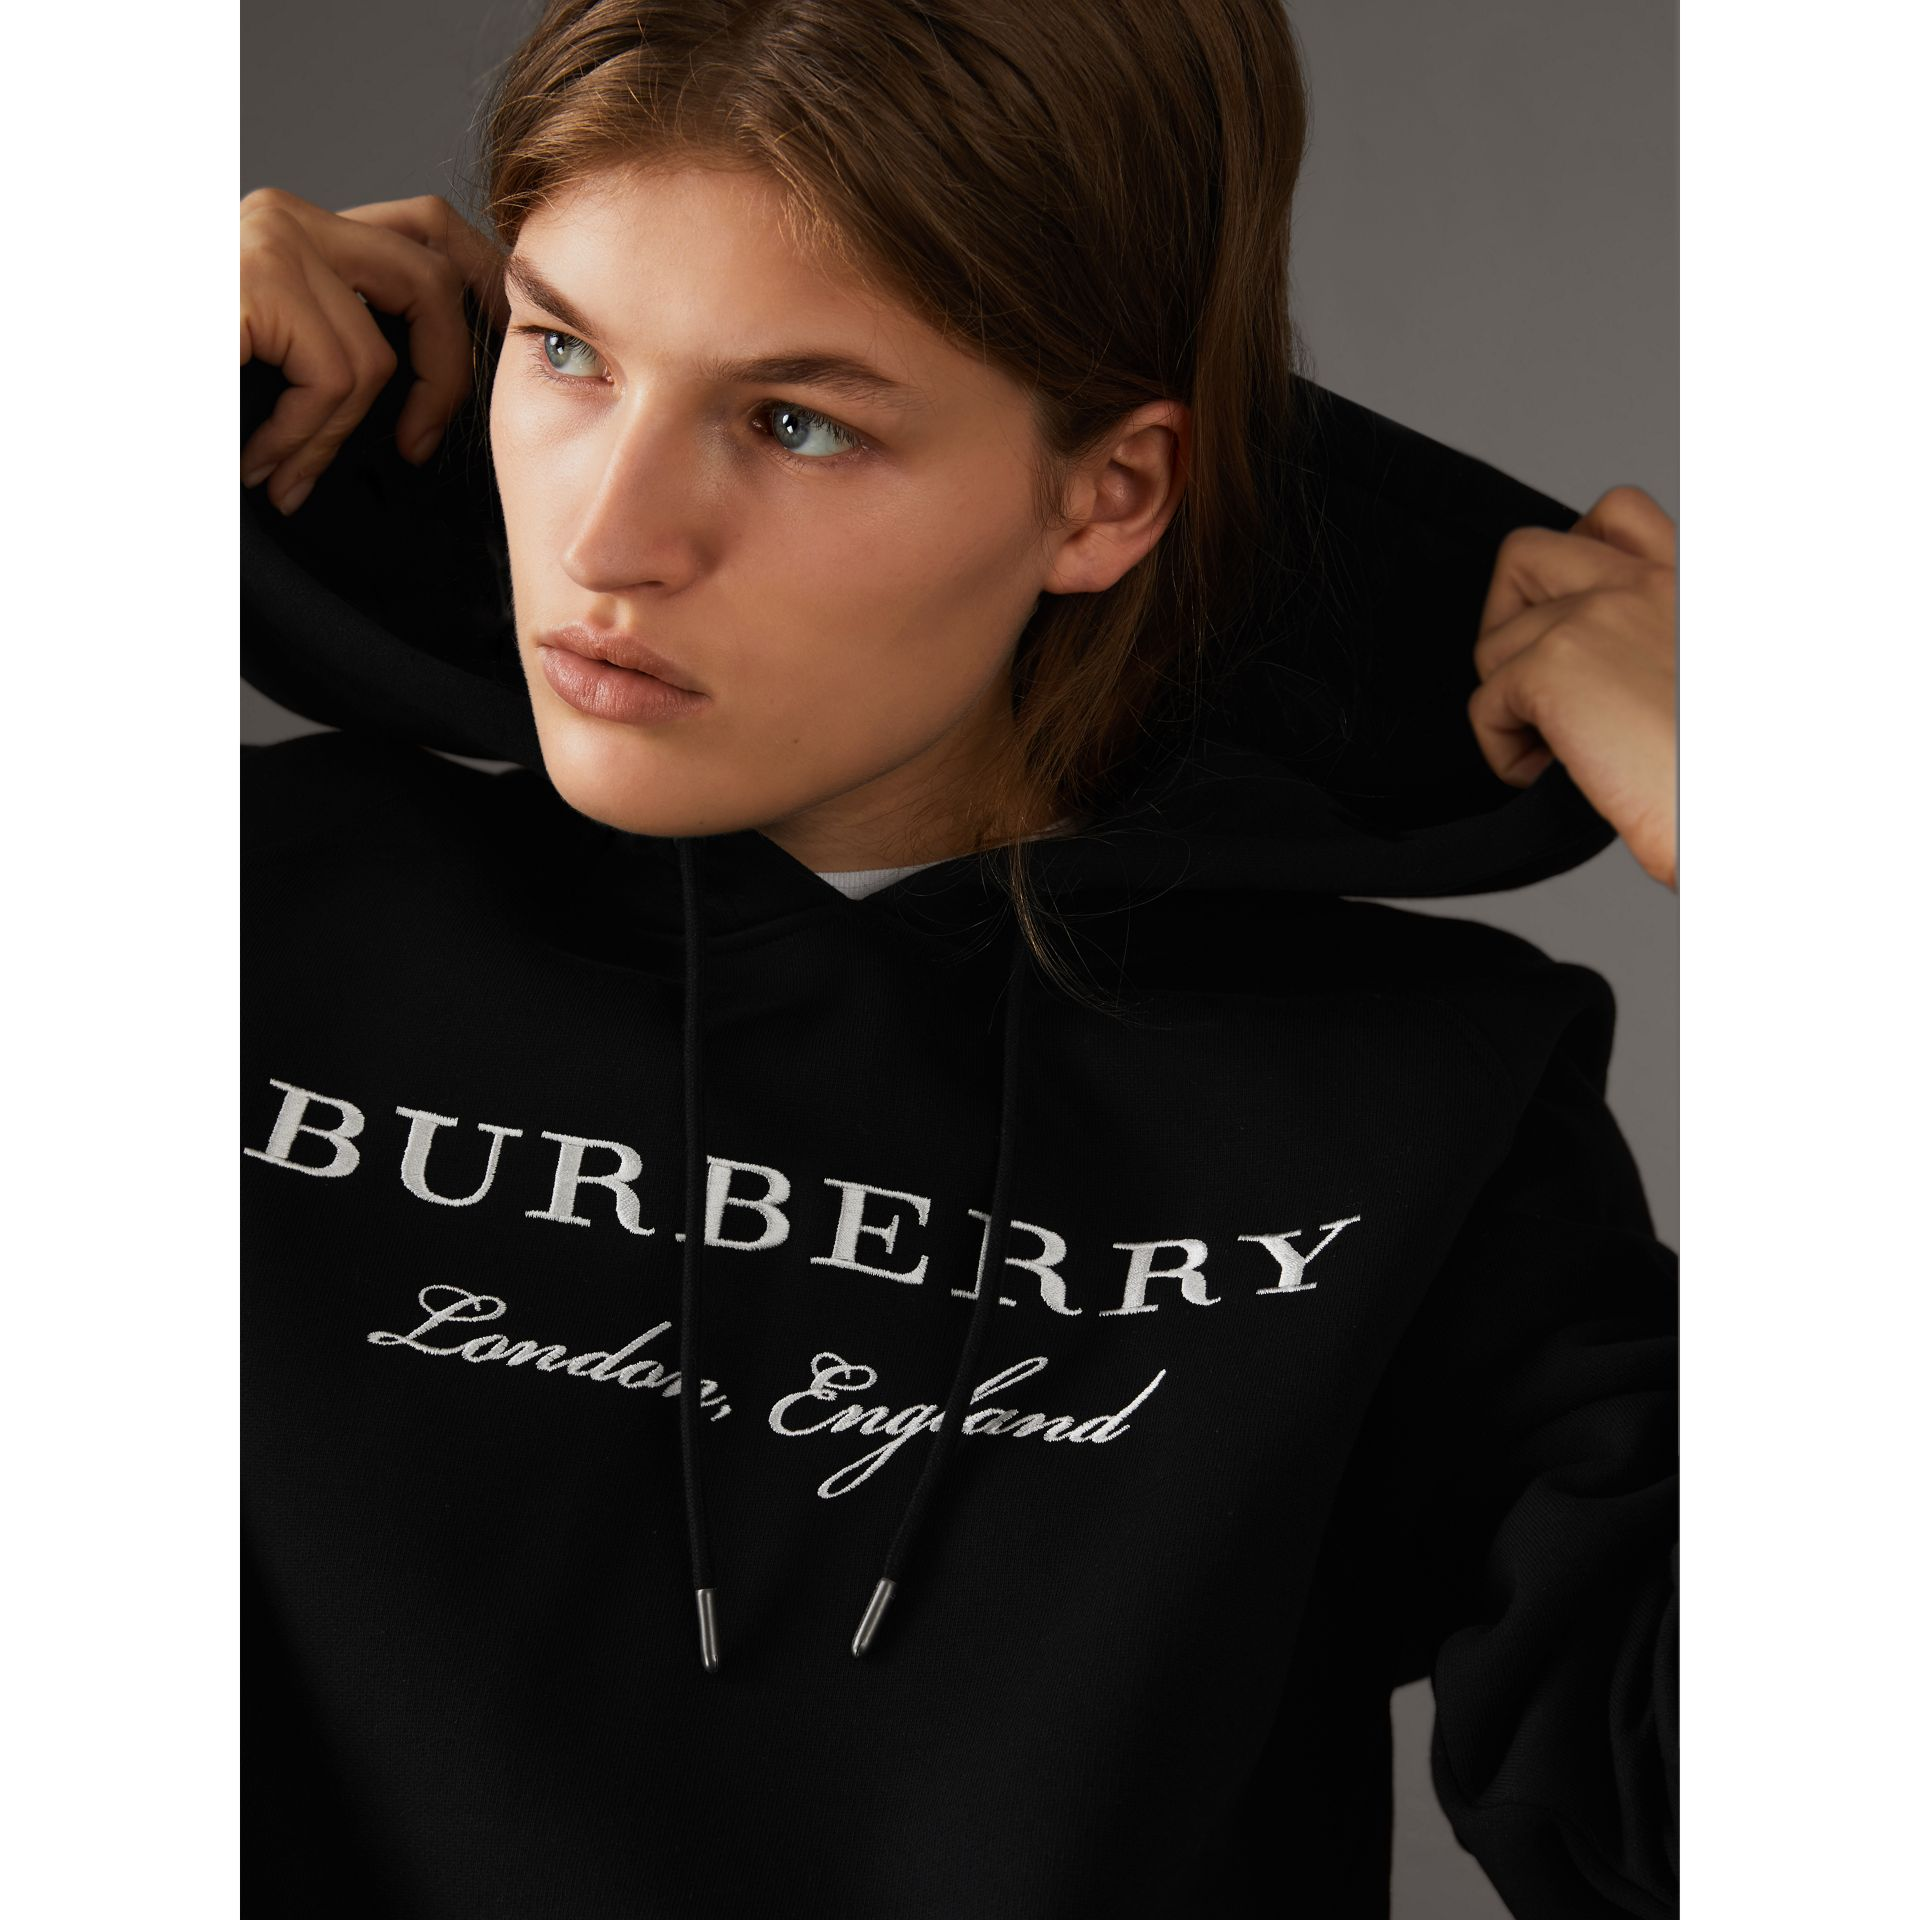 Sweat-shirt brodé à capuche (Noir) - Femme | Burberry - photo de la galerie 1